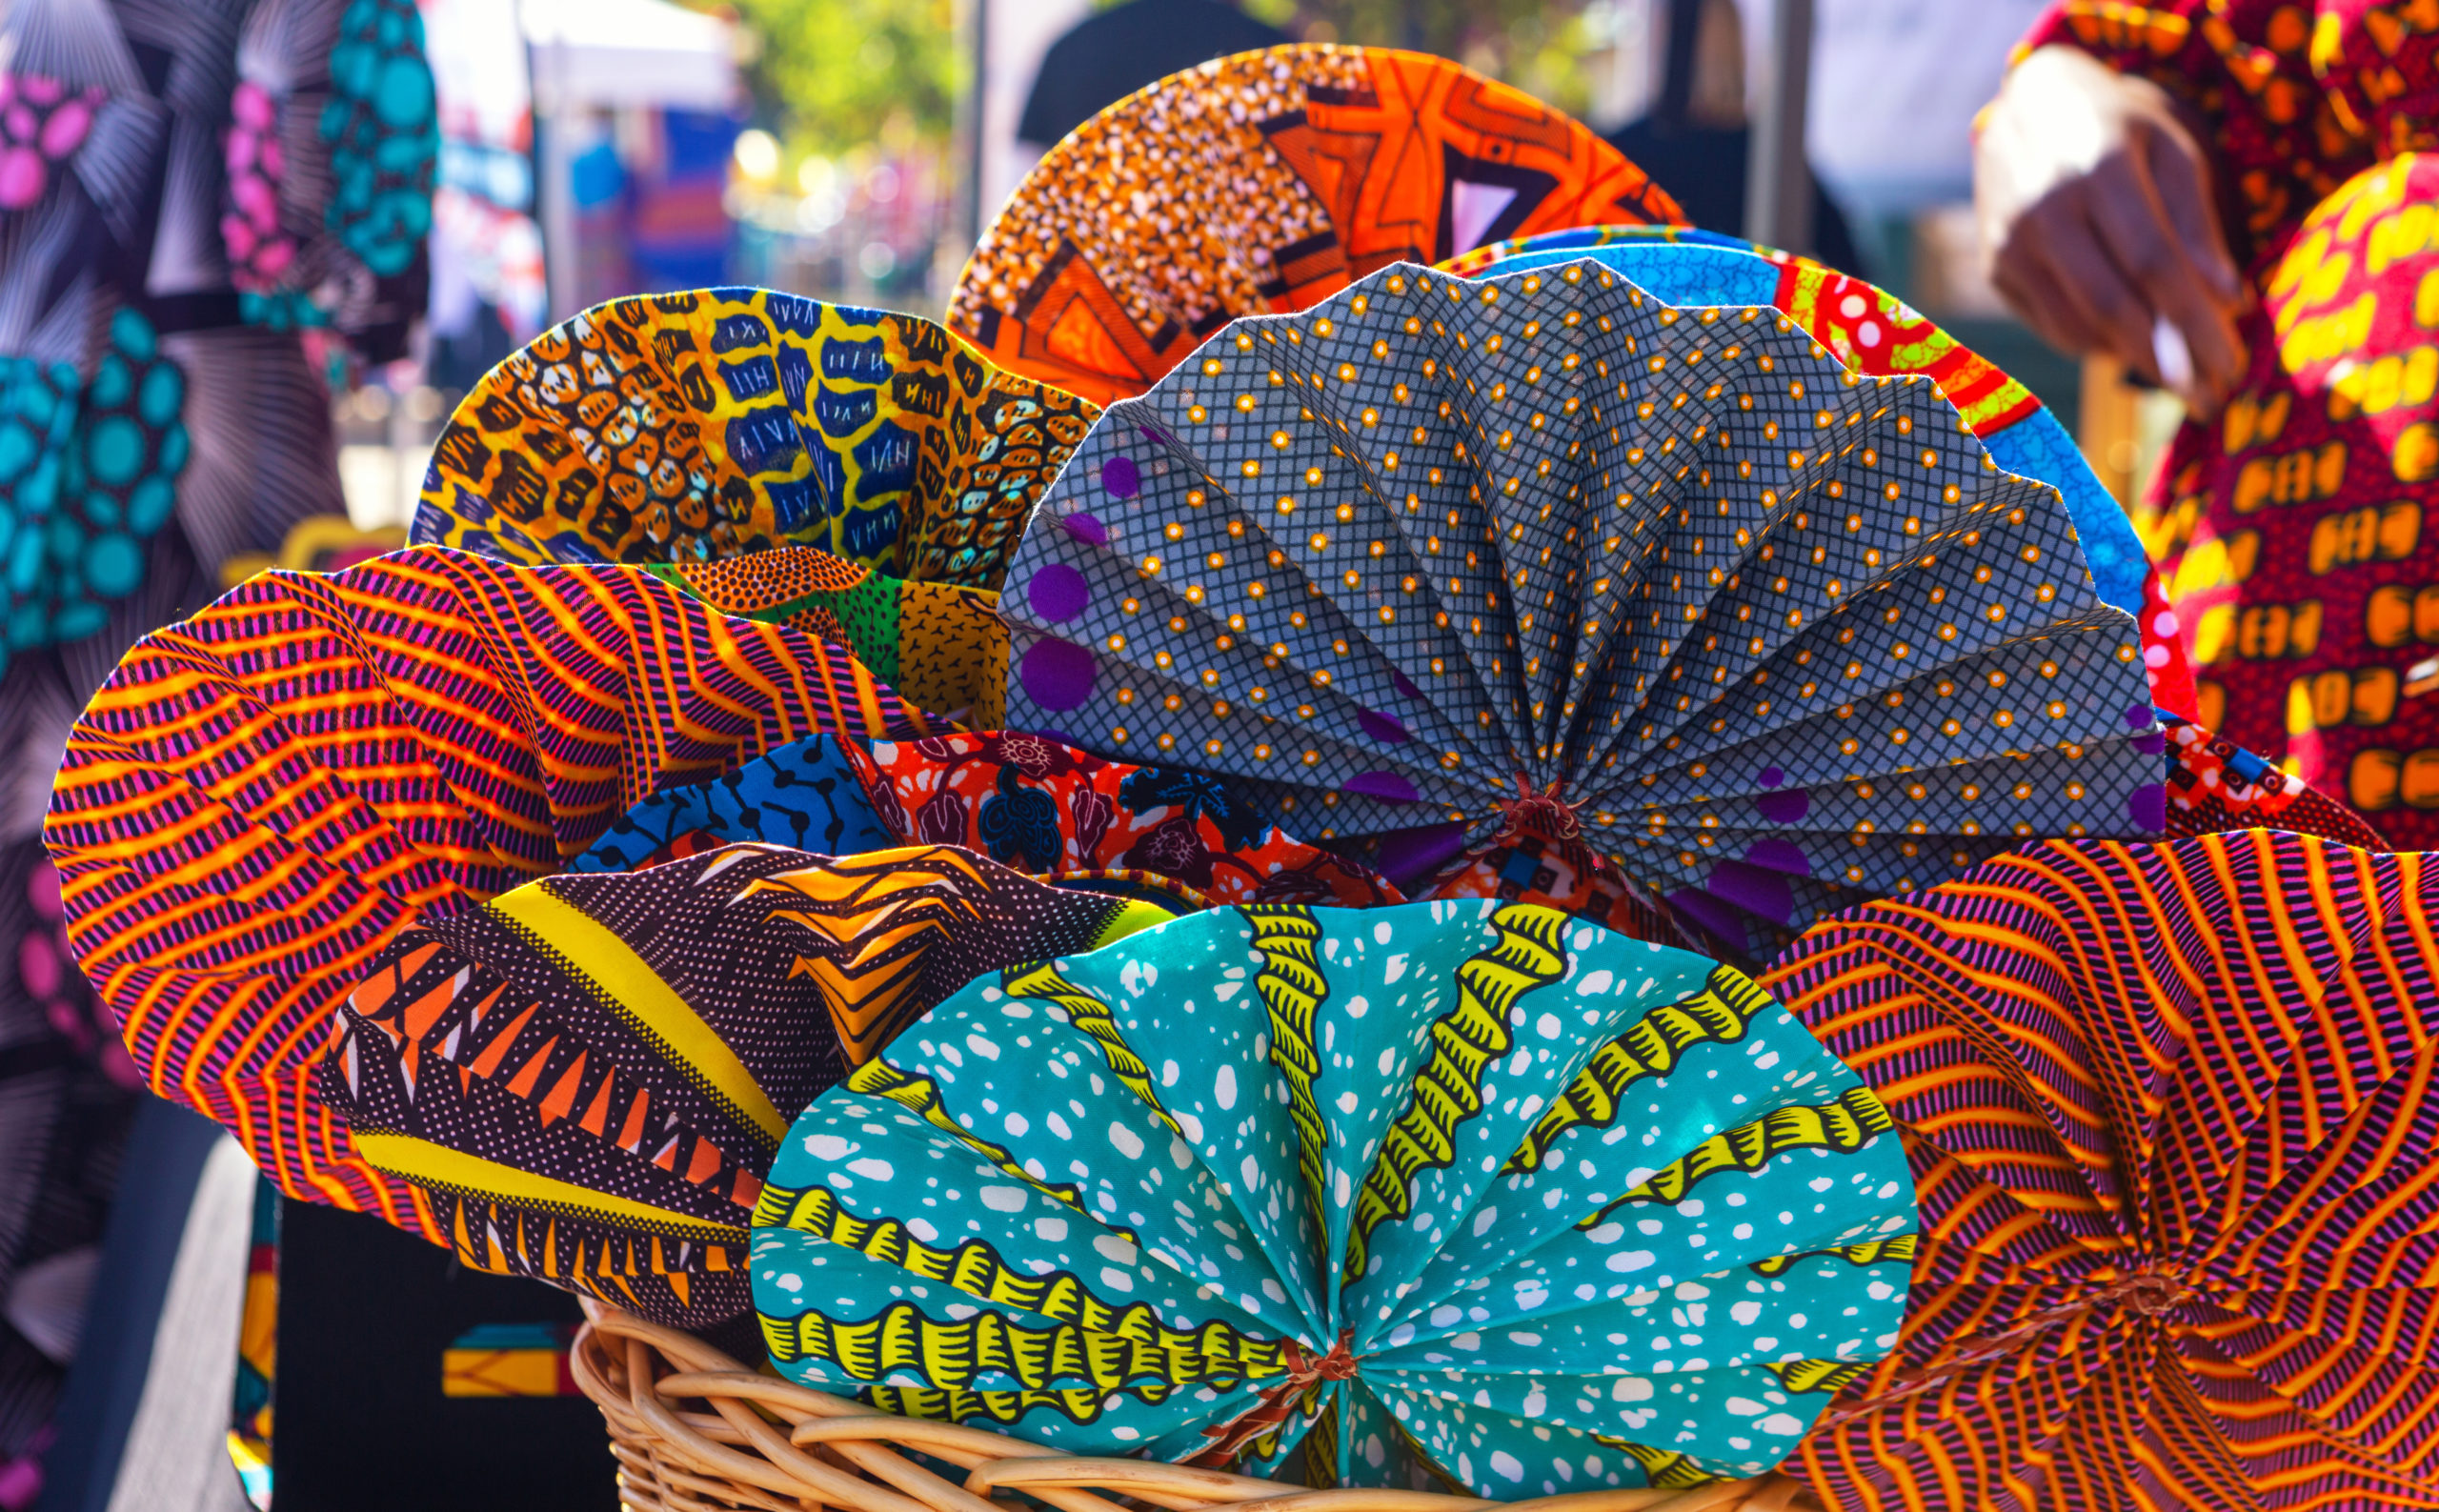 West African Fabric Fans at an Outdoor Market